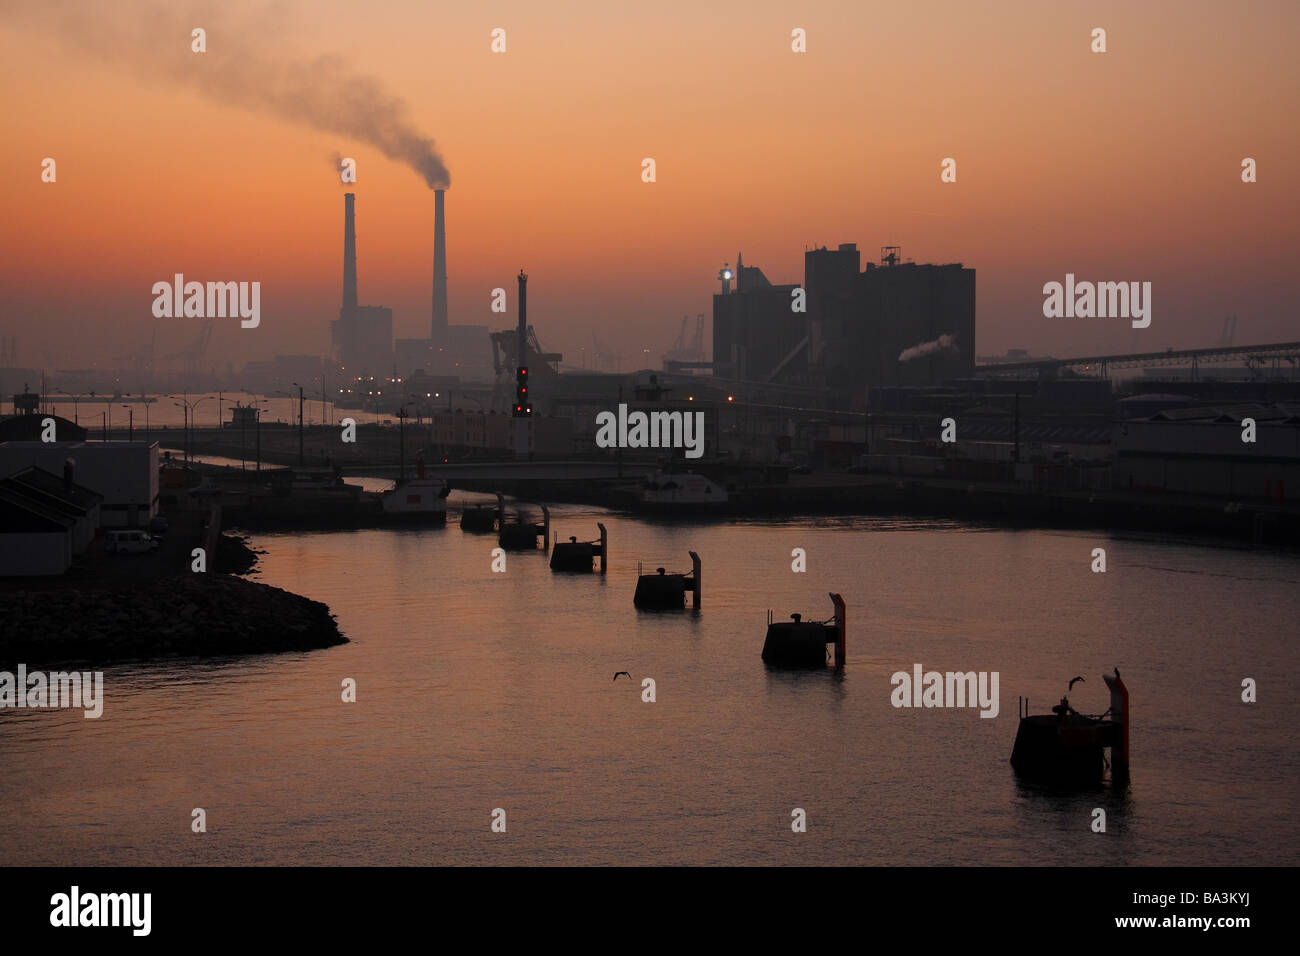 View of Le Havre port from the sea just before sunrise - Stock Image